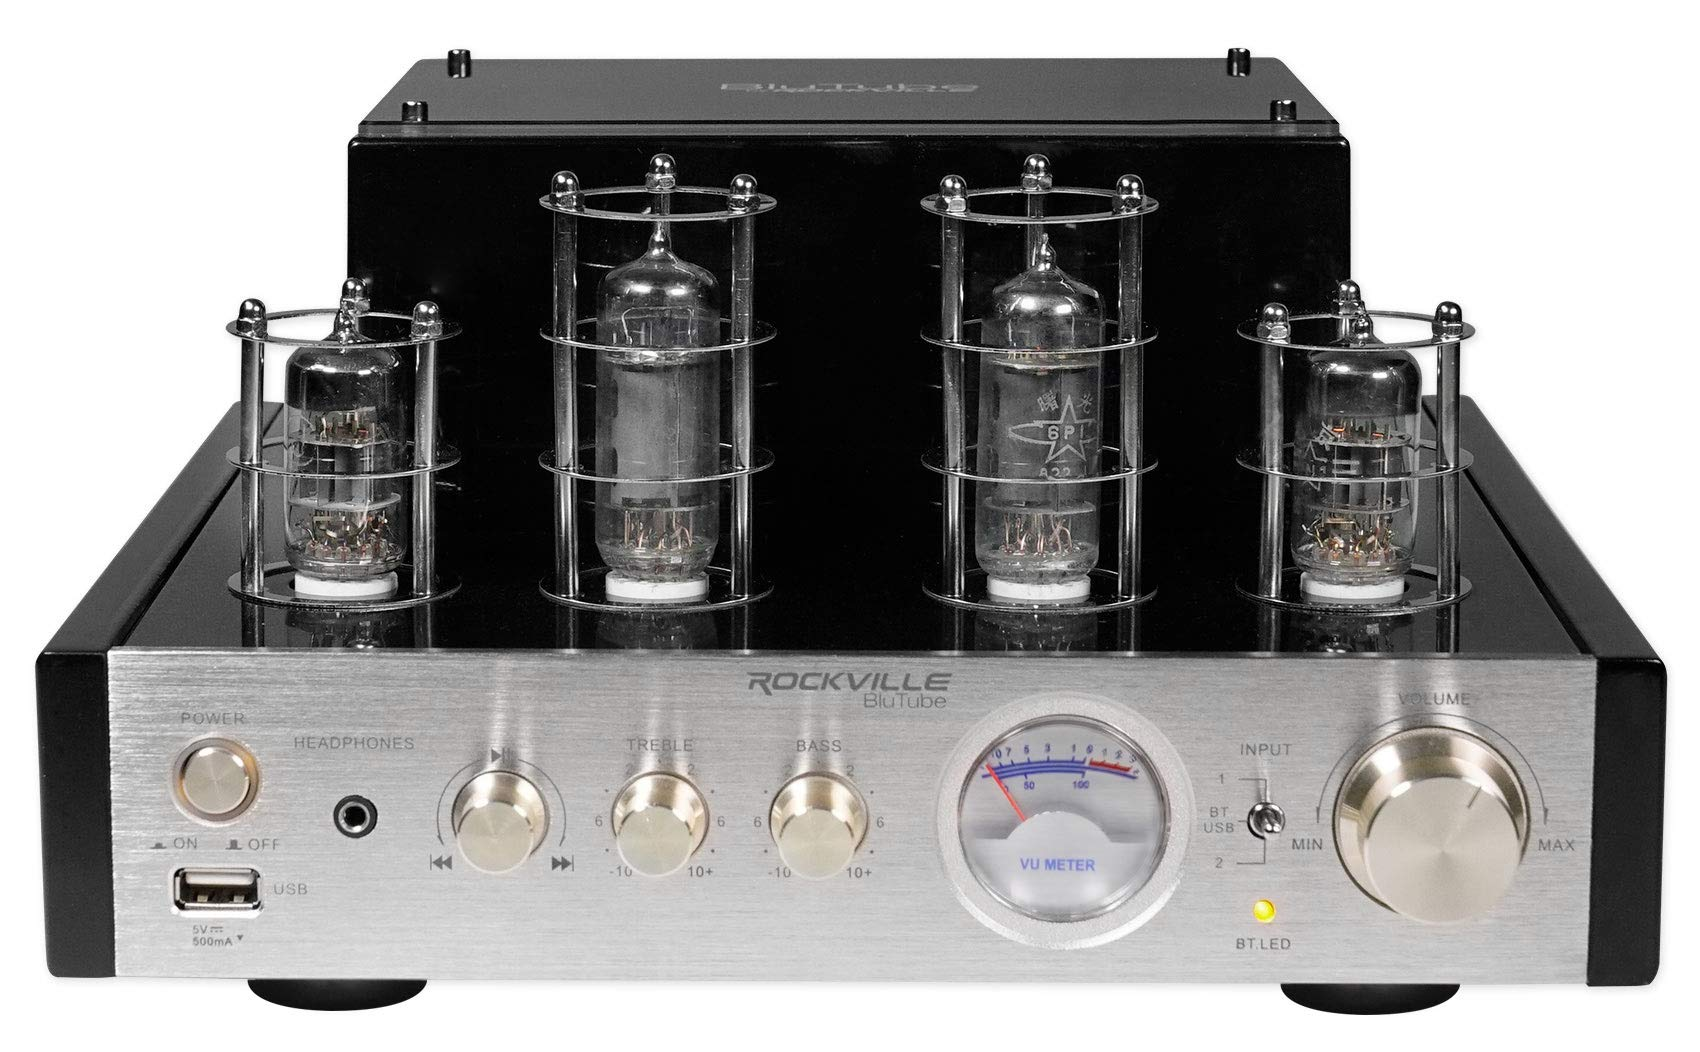 Rockville BluTube 70W Tube Amplifier/Home Theater Stereo Receiver with Bluetooth by Rockville